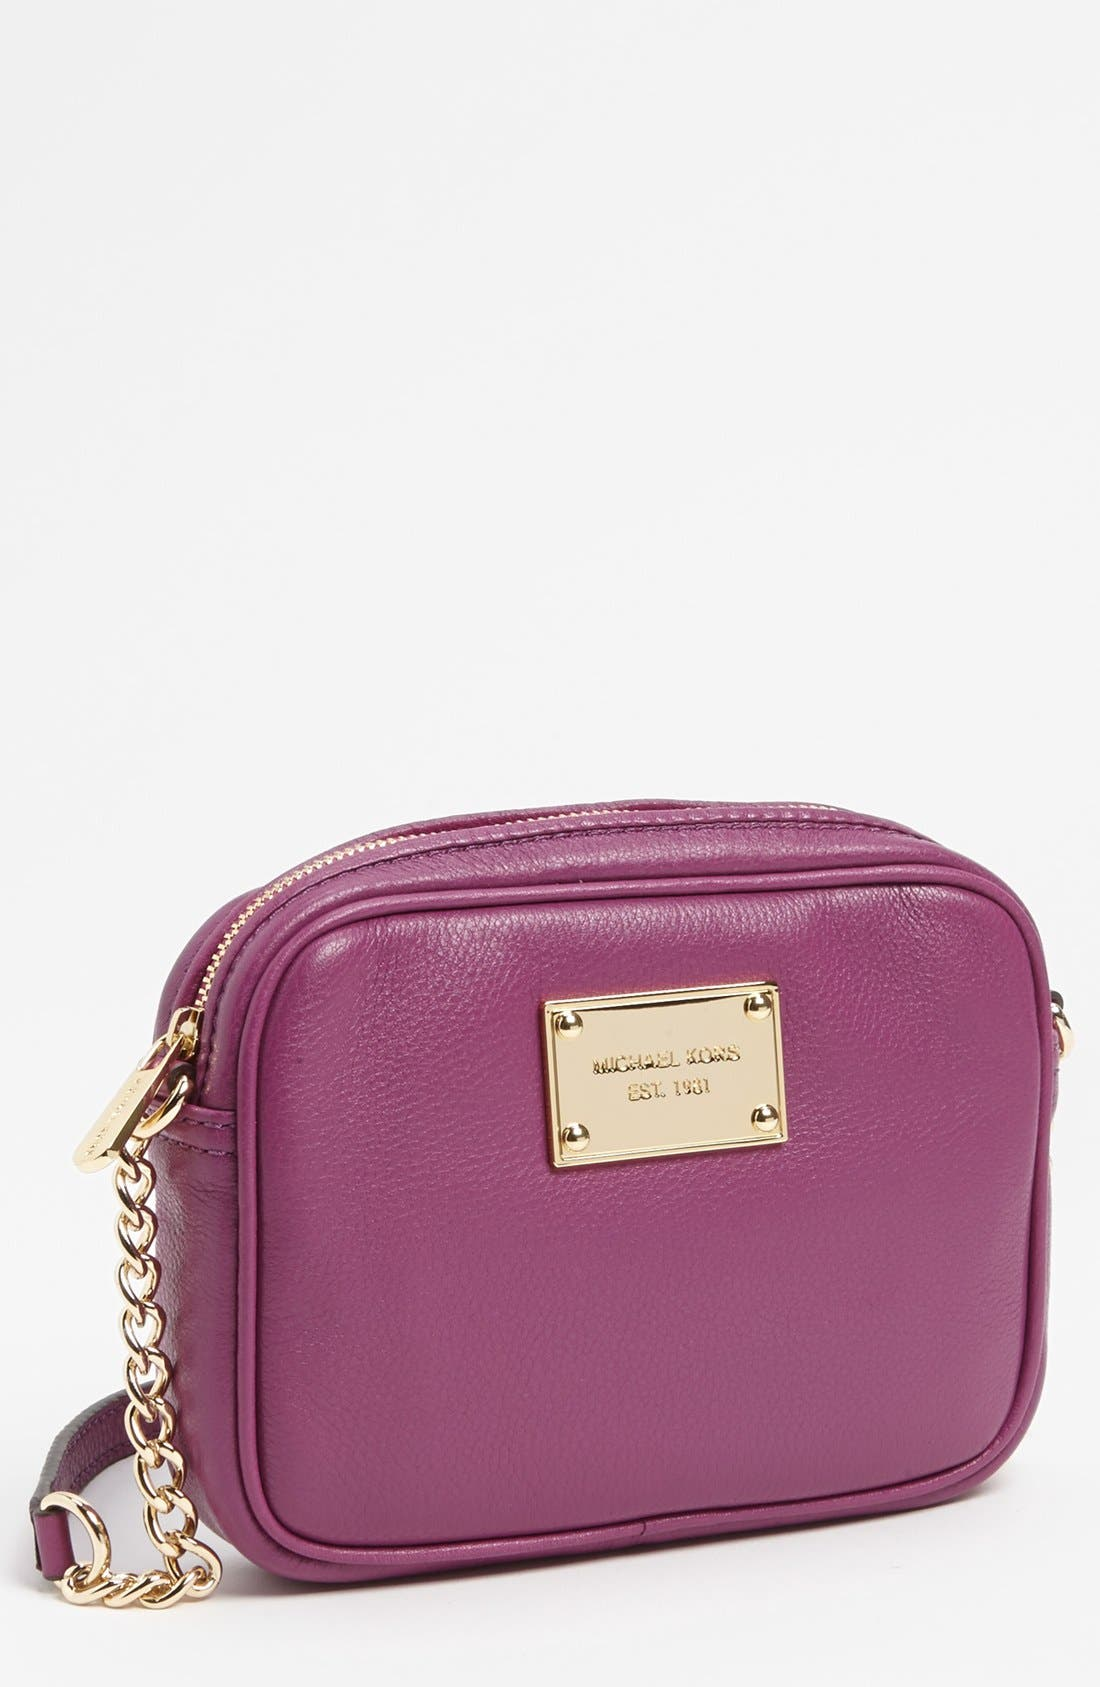 Alternate Image 1 Selected - MICHAEL Michael Kors 'Jet Set' Crossbody Bag